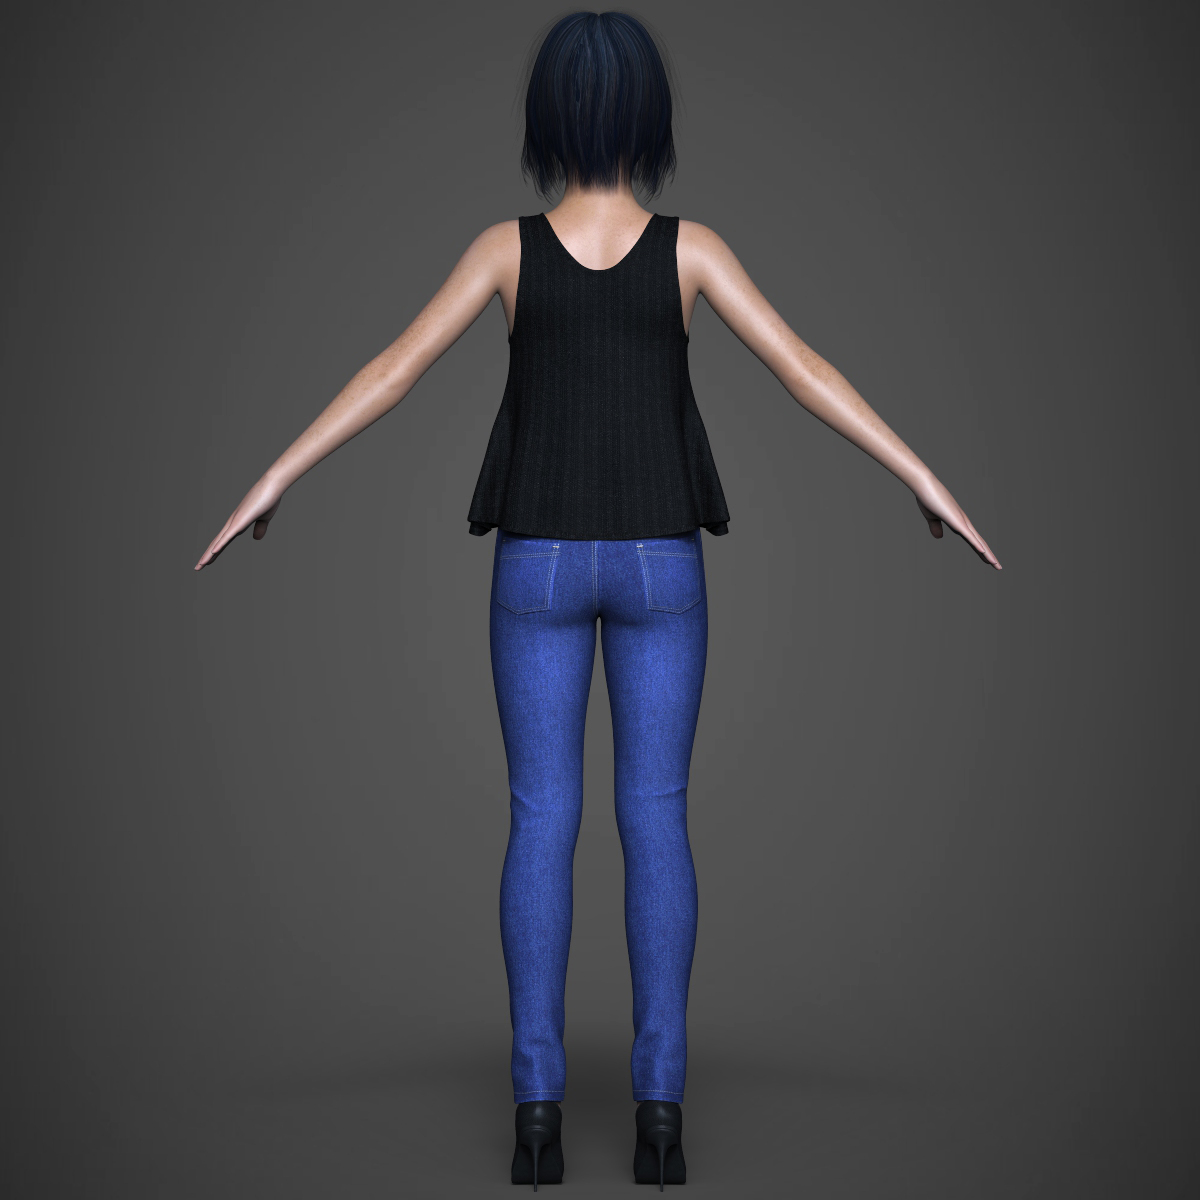 beautiful teen girl 3d model max fbx c4d ma mb texture obj 252315